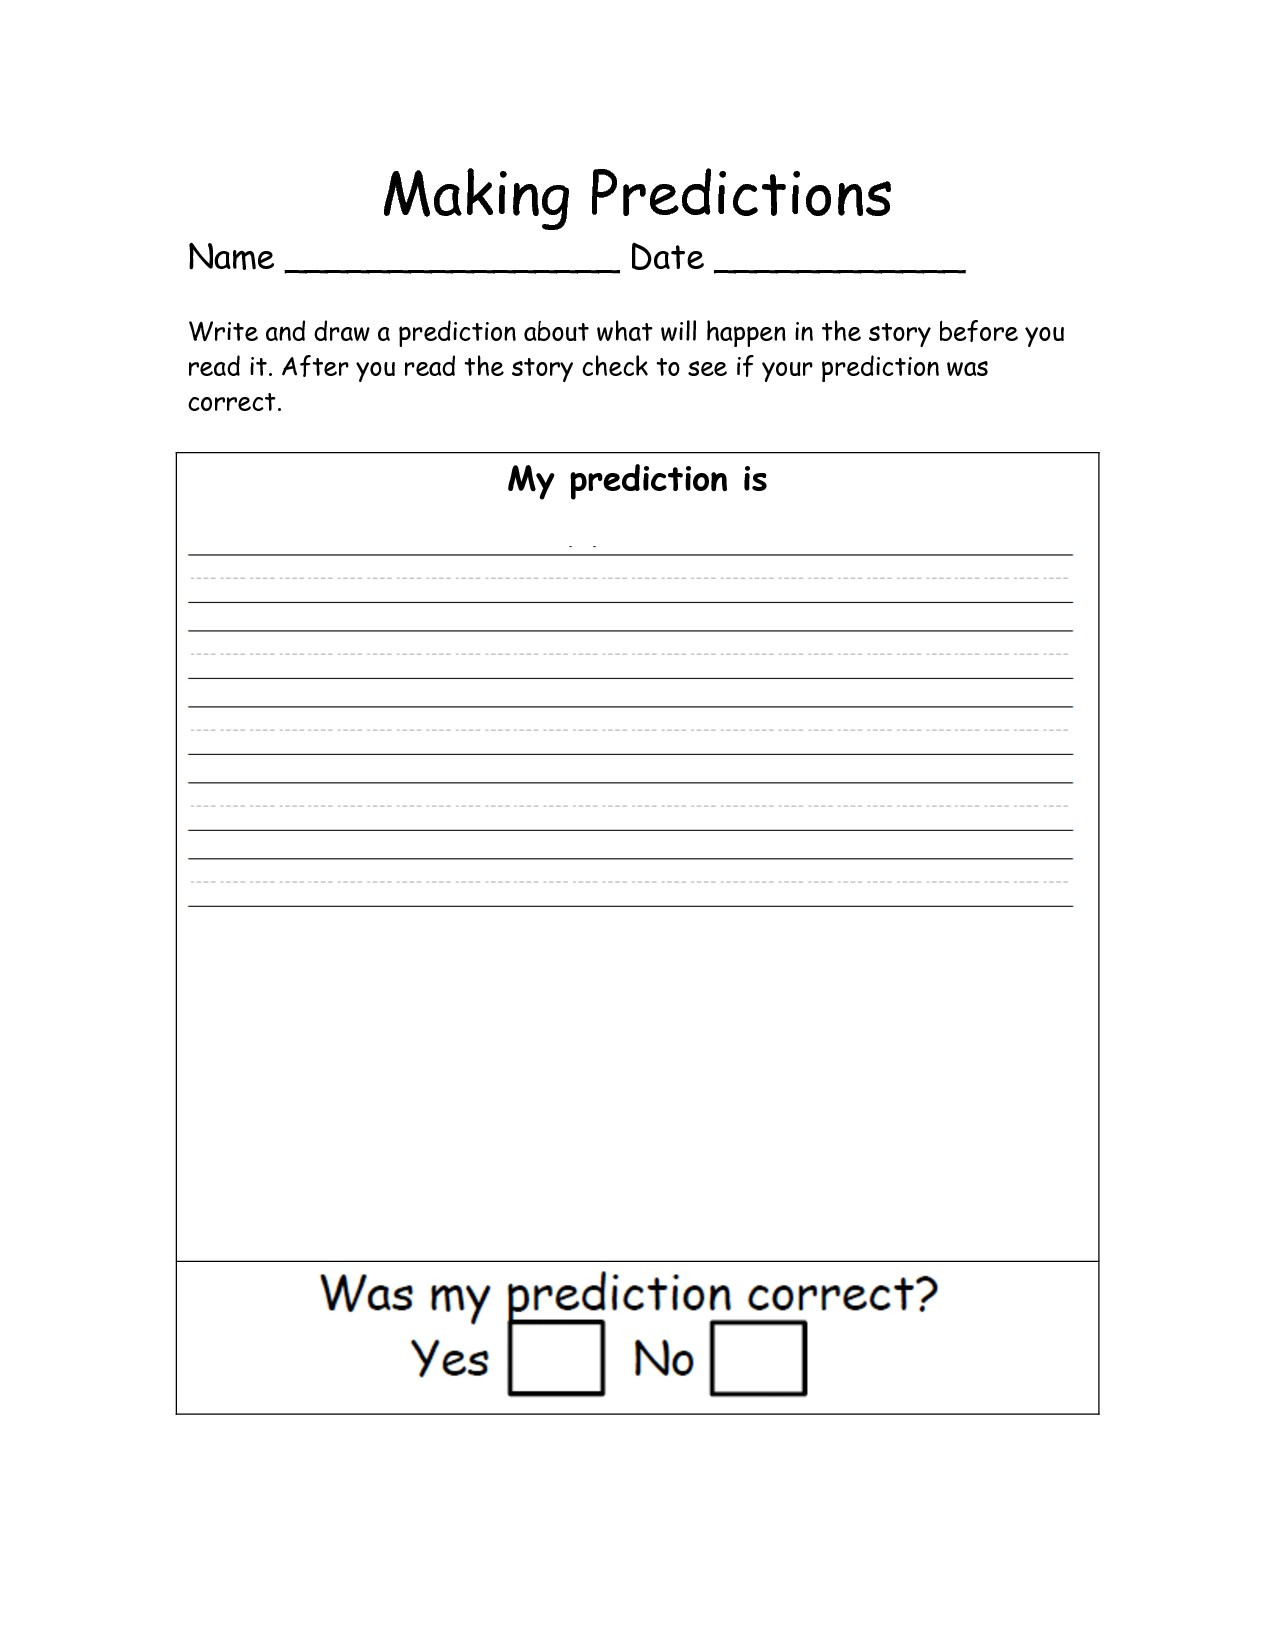 Making Predictions Worksheets 2nd Grade Prediction Math Worksheets 2nd Grade